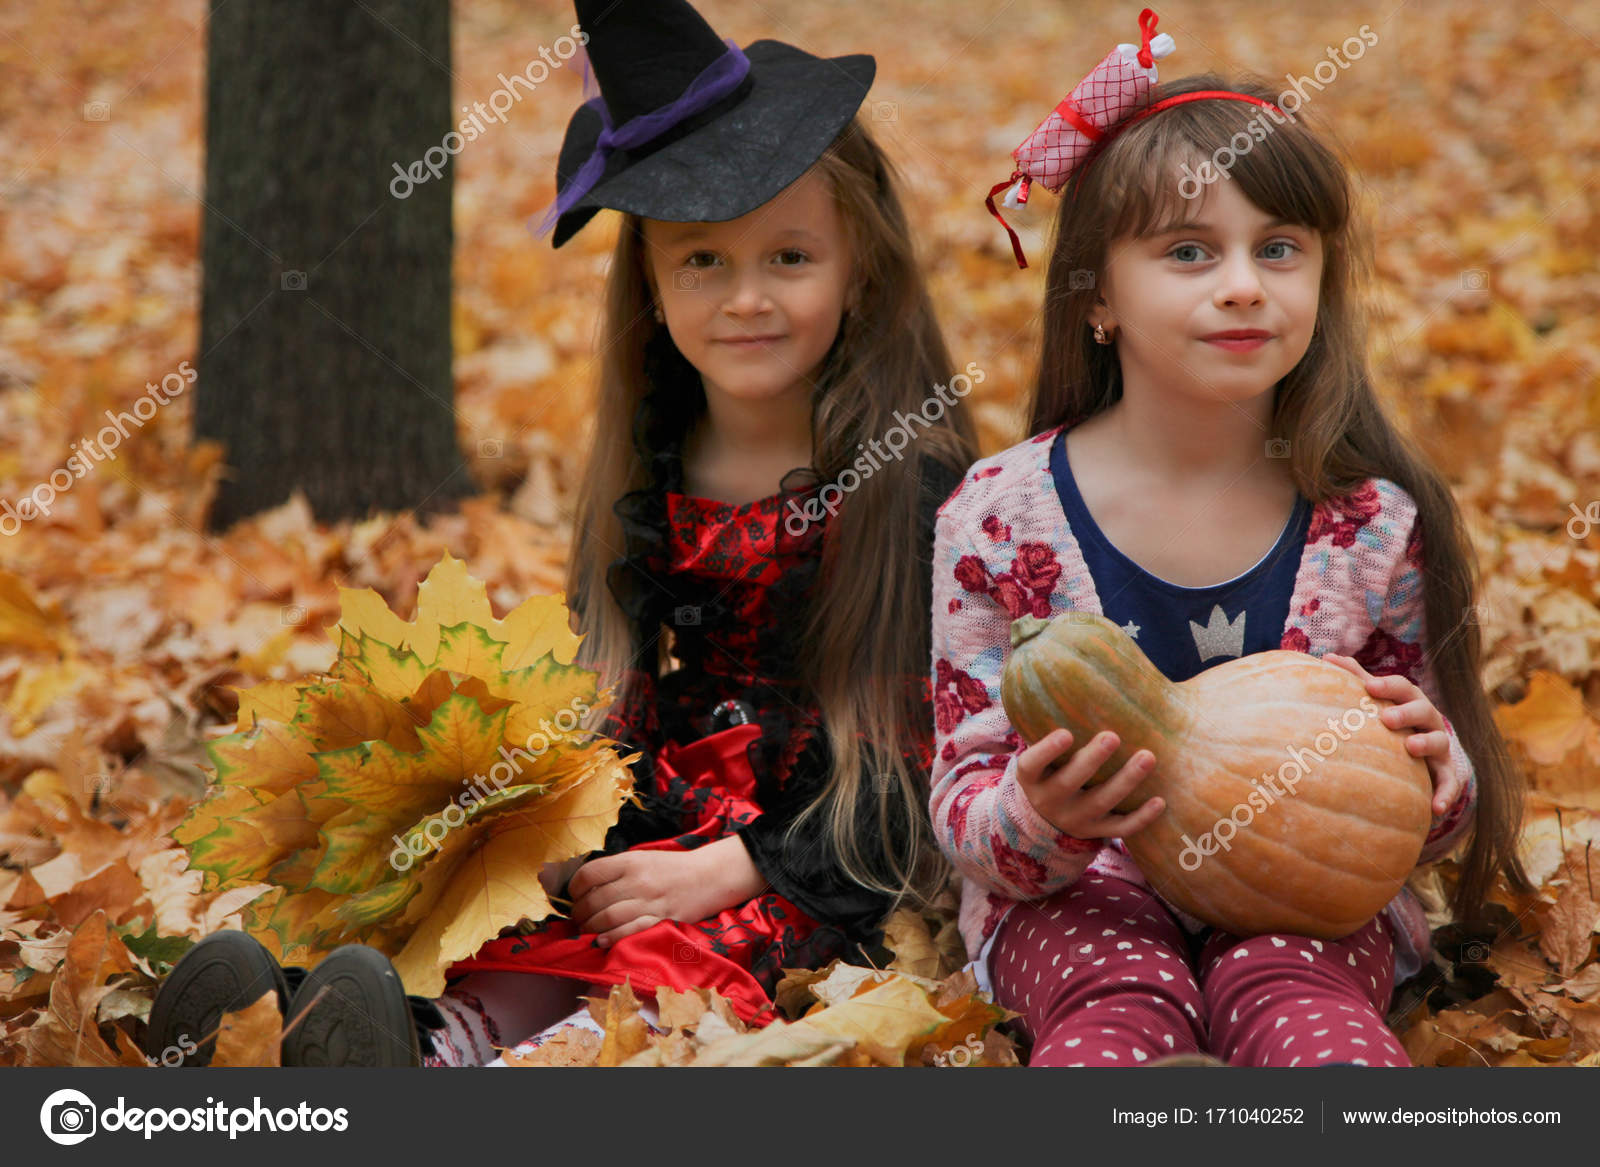 Two Girls In Halloween Costumes Stock Photo Alexthq 171040252